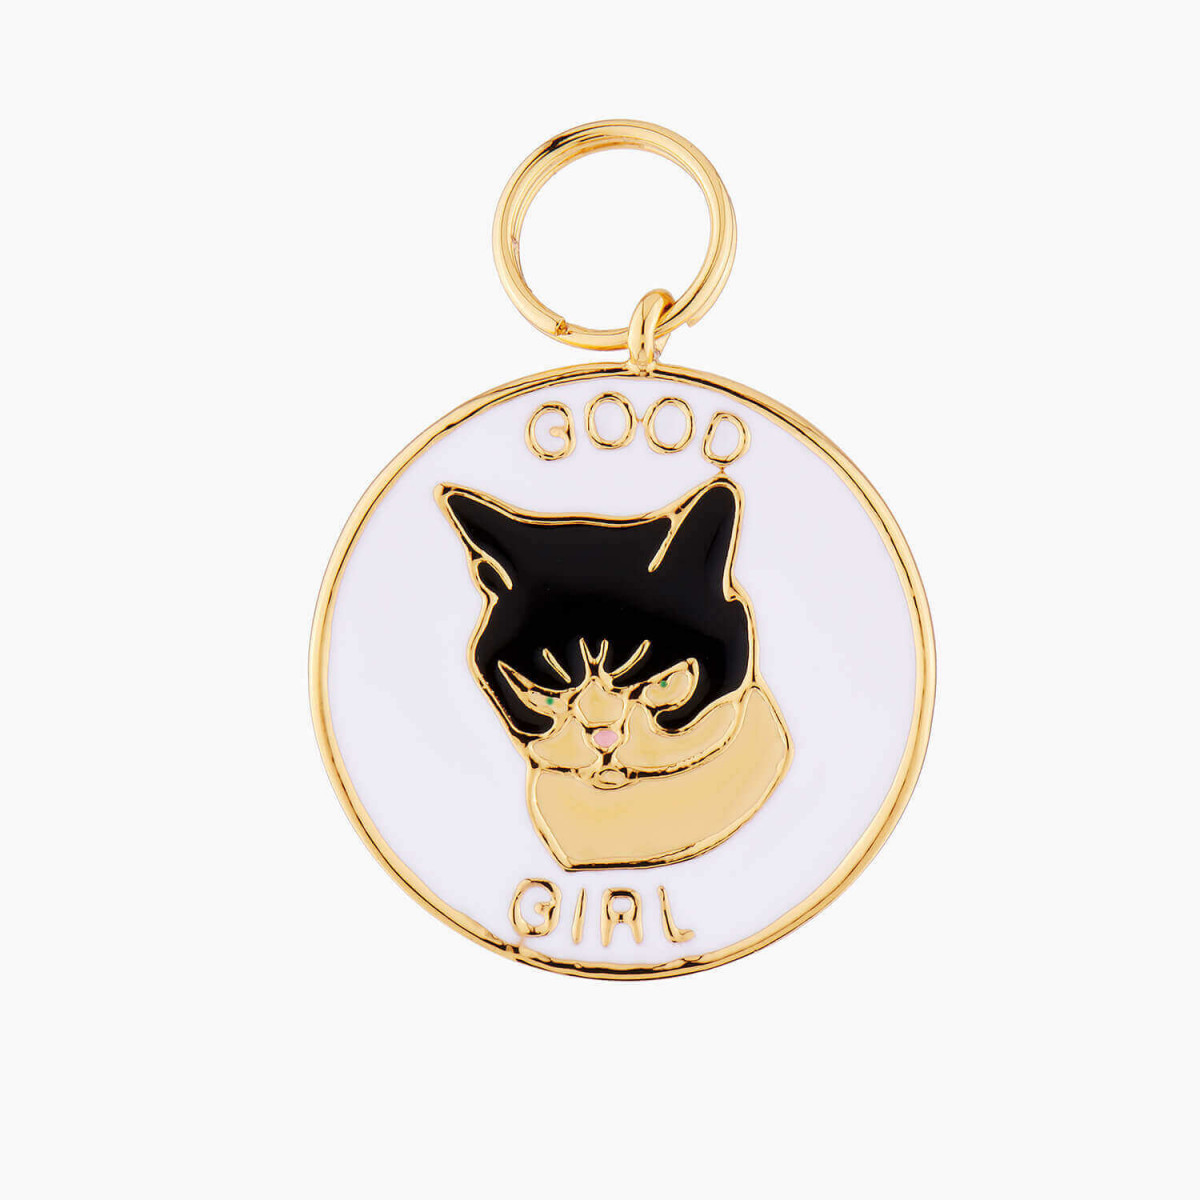 Colliers Originaux Pendentif Chat Good Girl35,00 € AMNA901/1N2 by Les Néréides